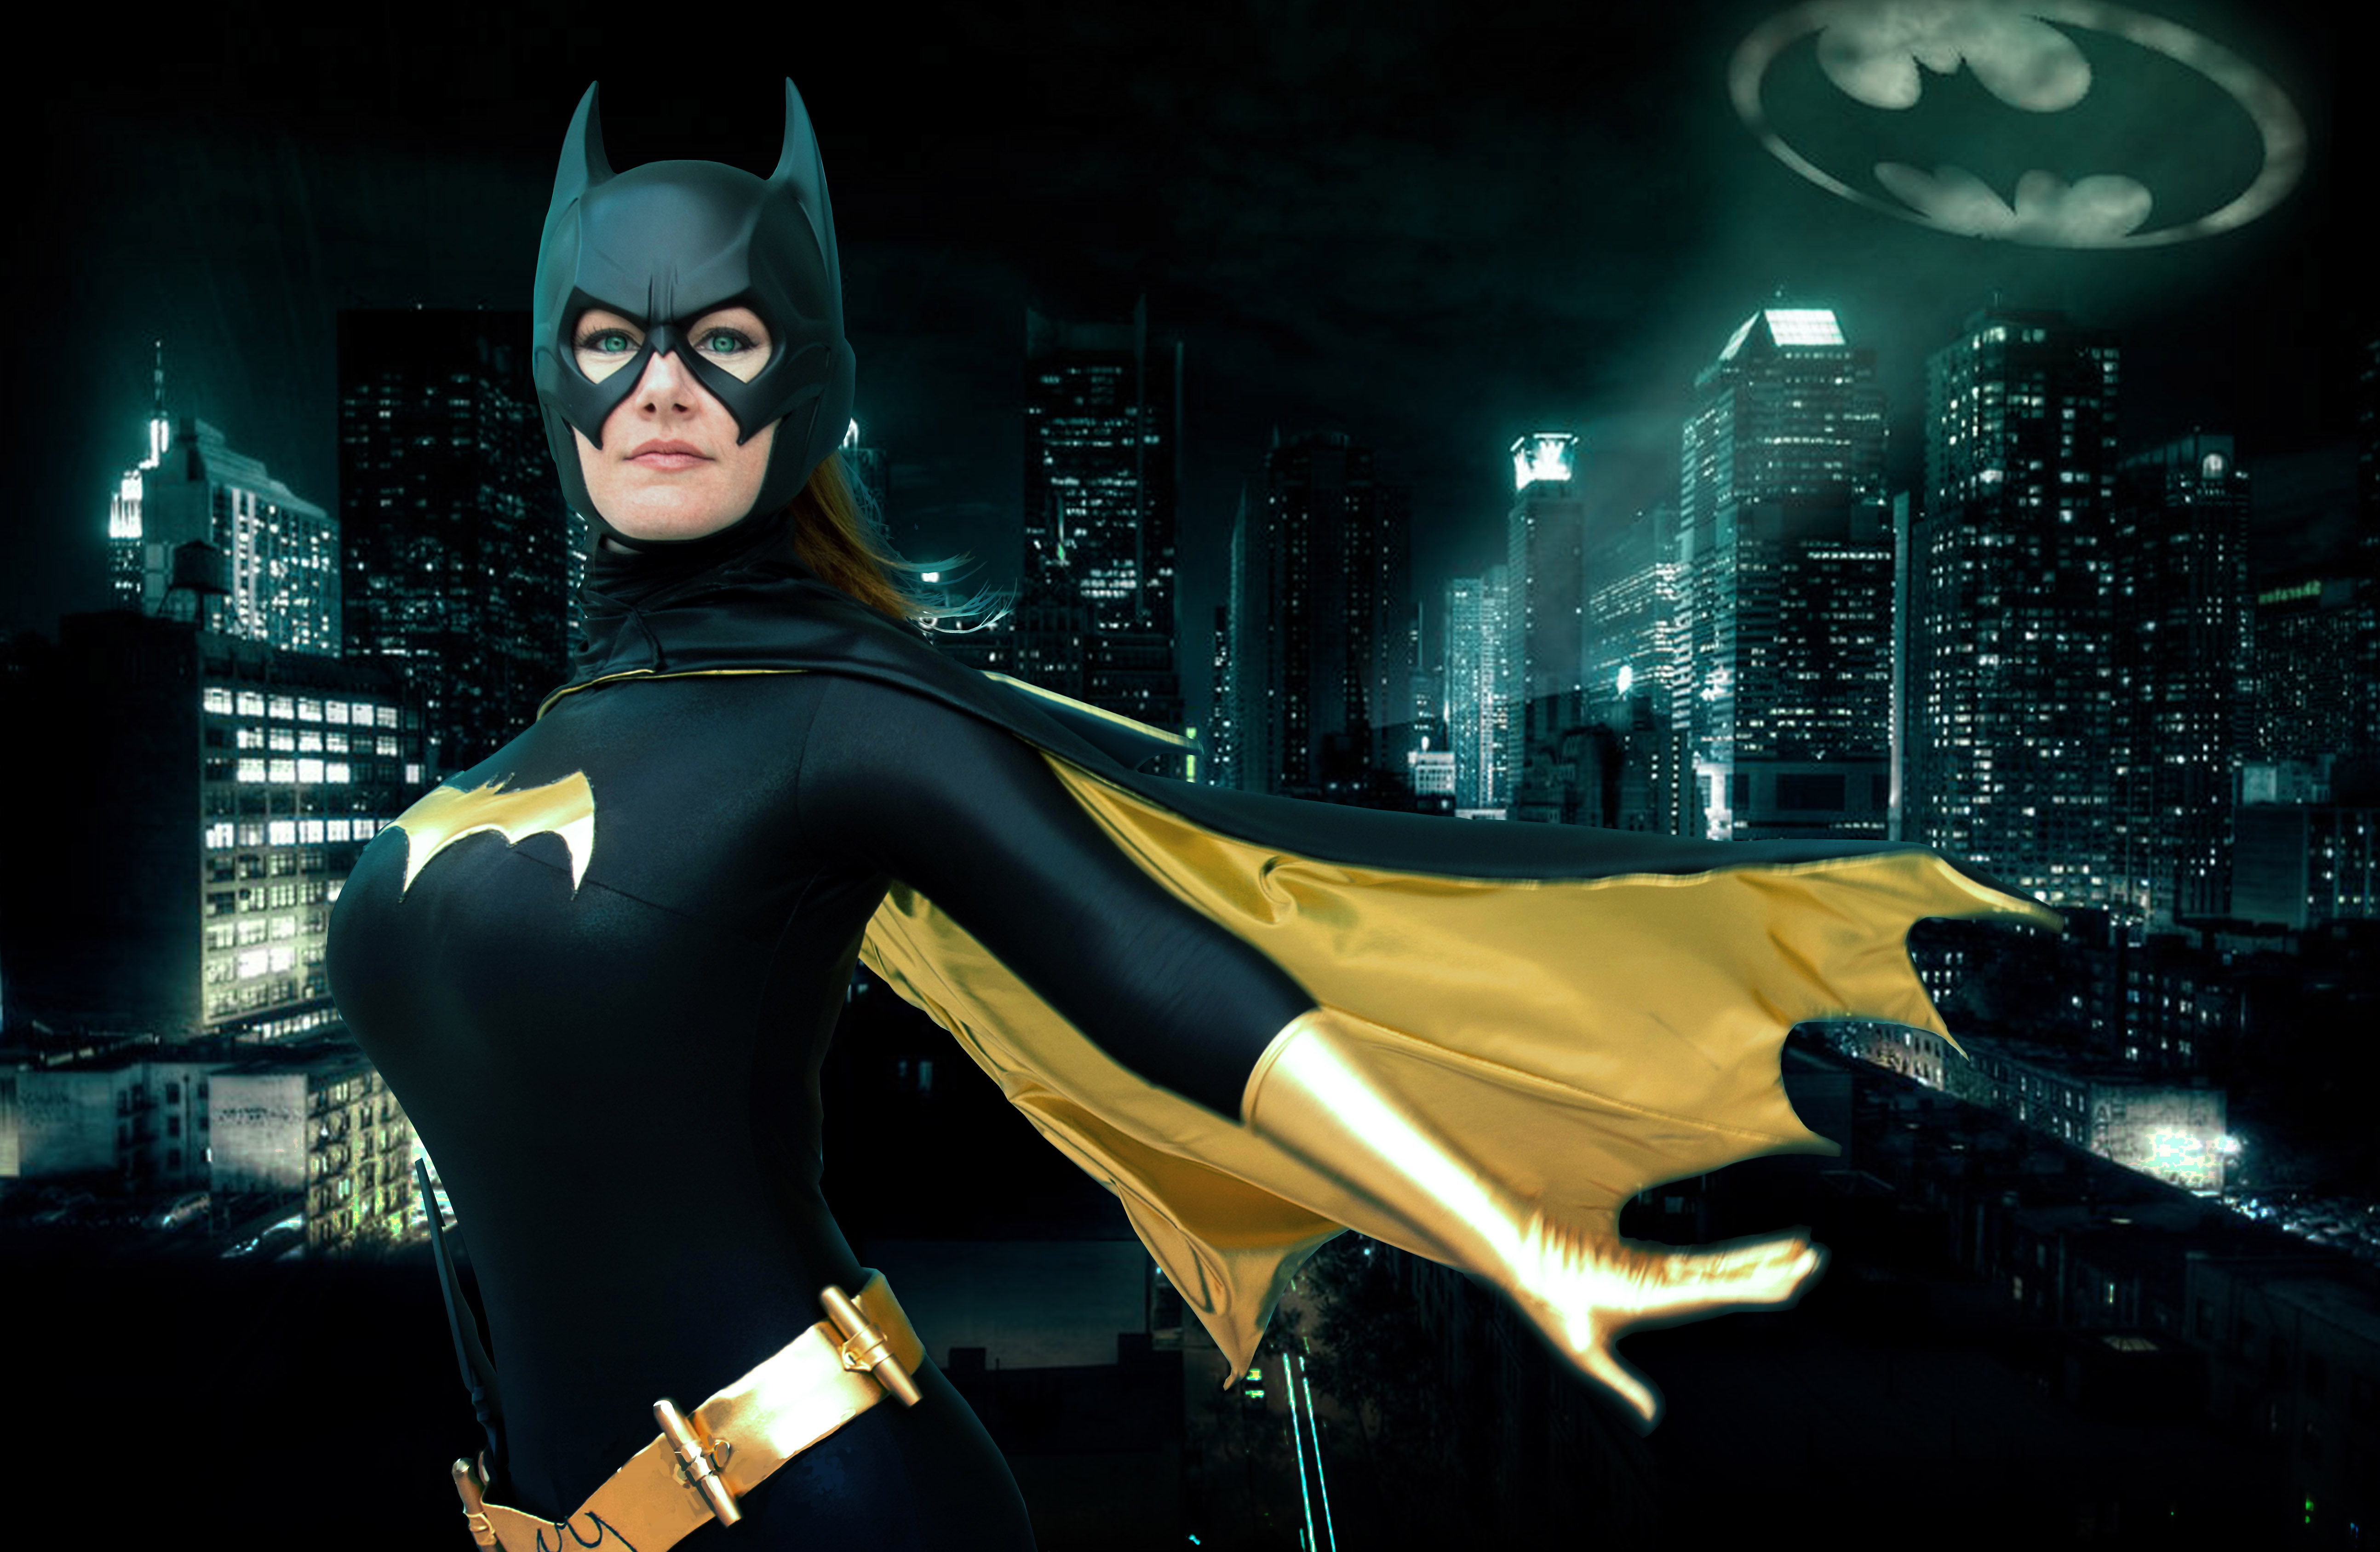 VegasPGcosplay | Gotham's call for Batgirl | Online Store Powered by ...: vegaspgcosplay.storenvy.com/collections/193548-all-products...